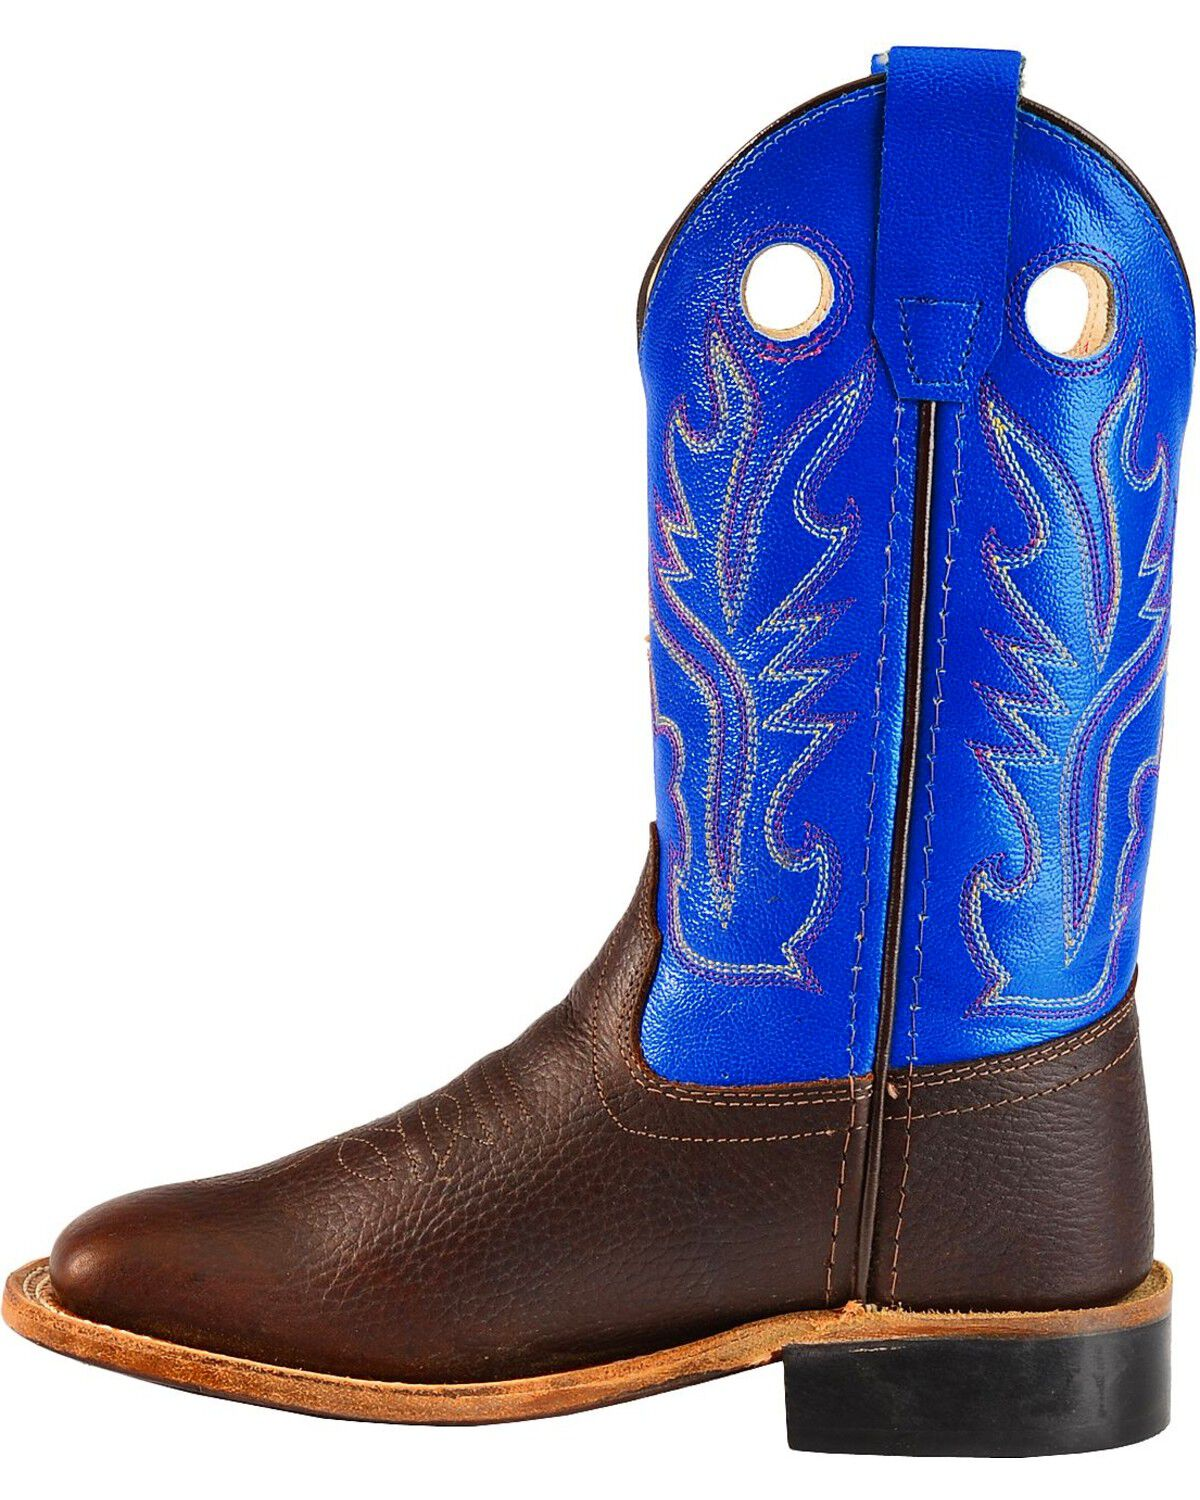 93e4f256f55 Beautiful Old West Children39s Thunder Cowboy Boots Country ...